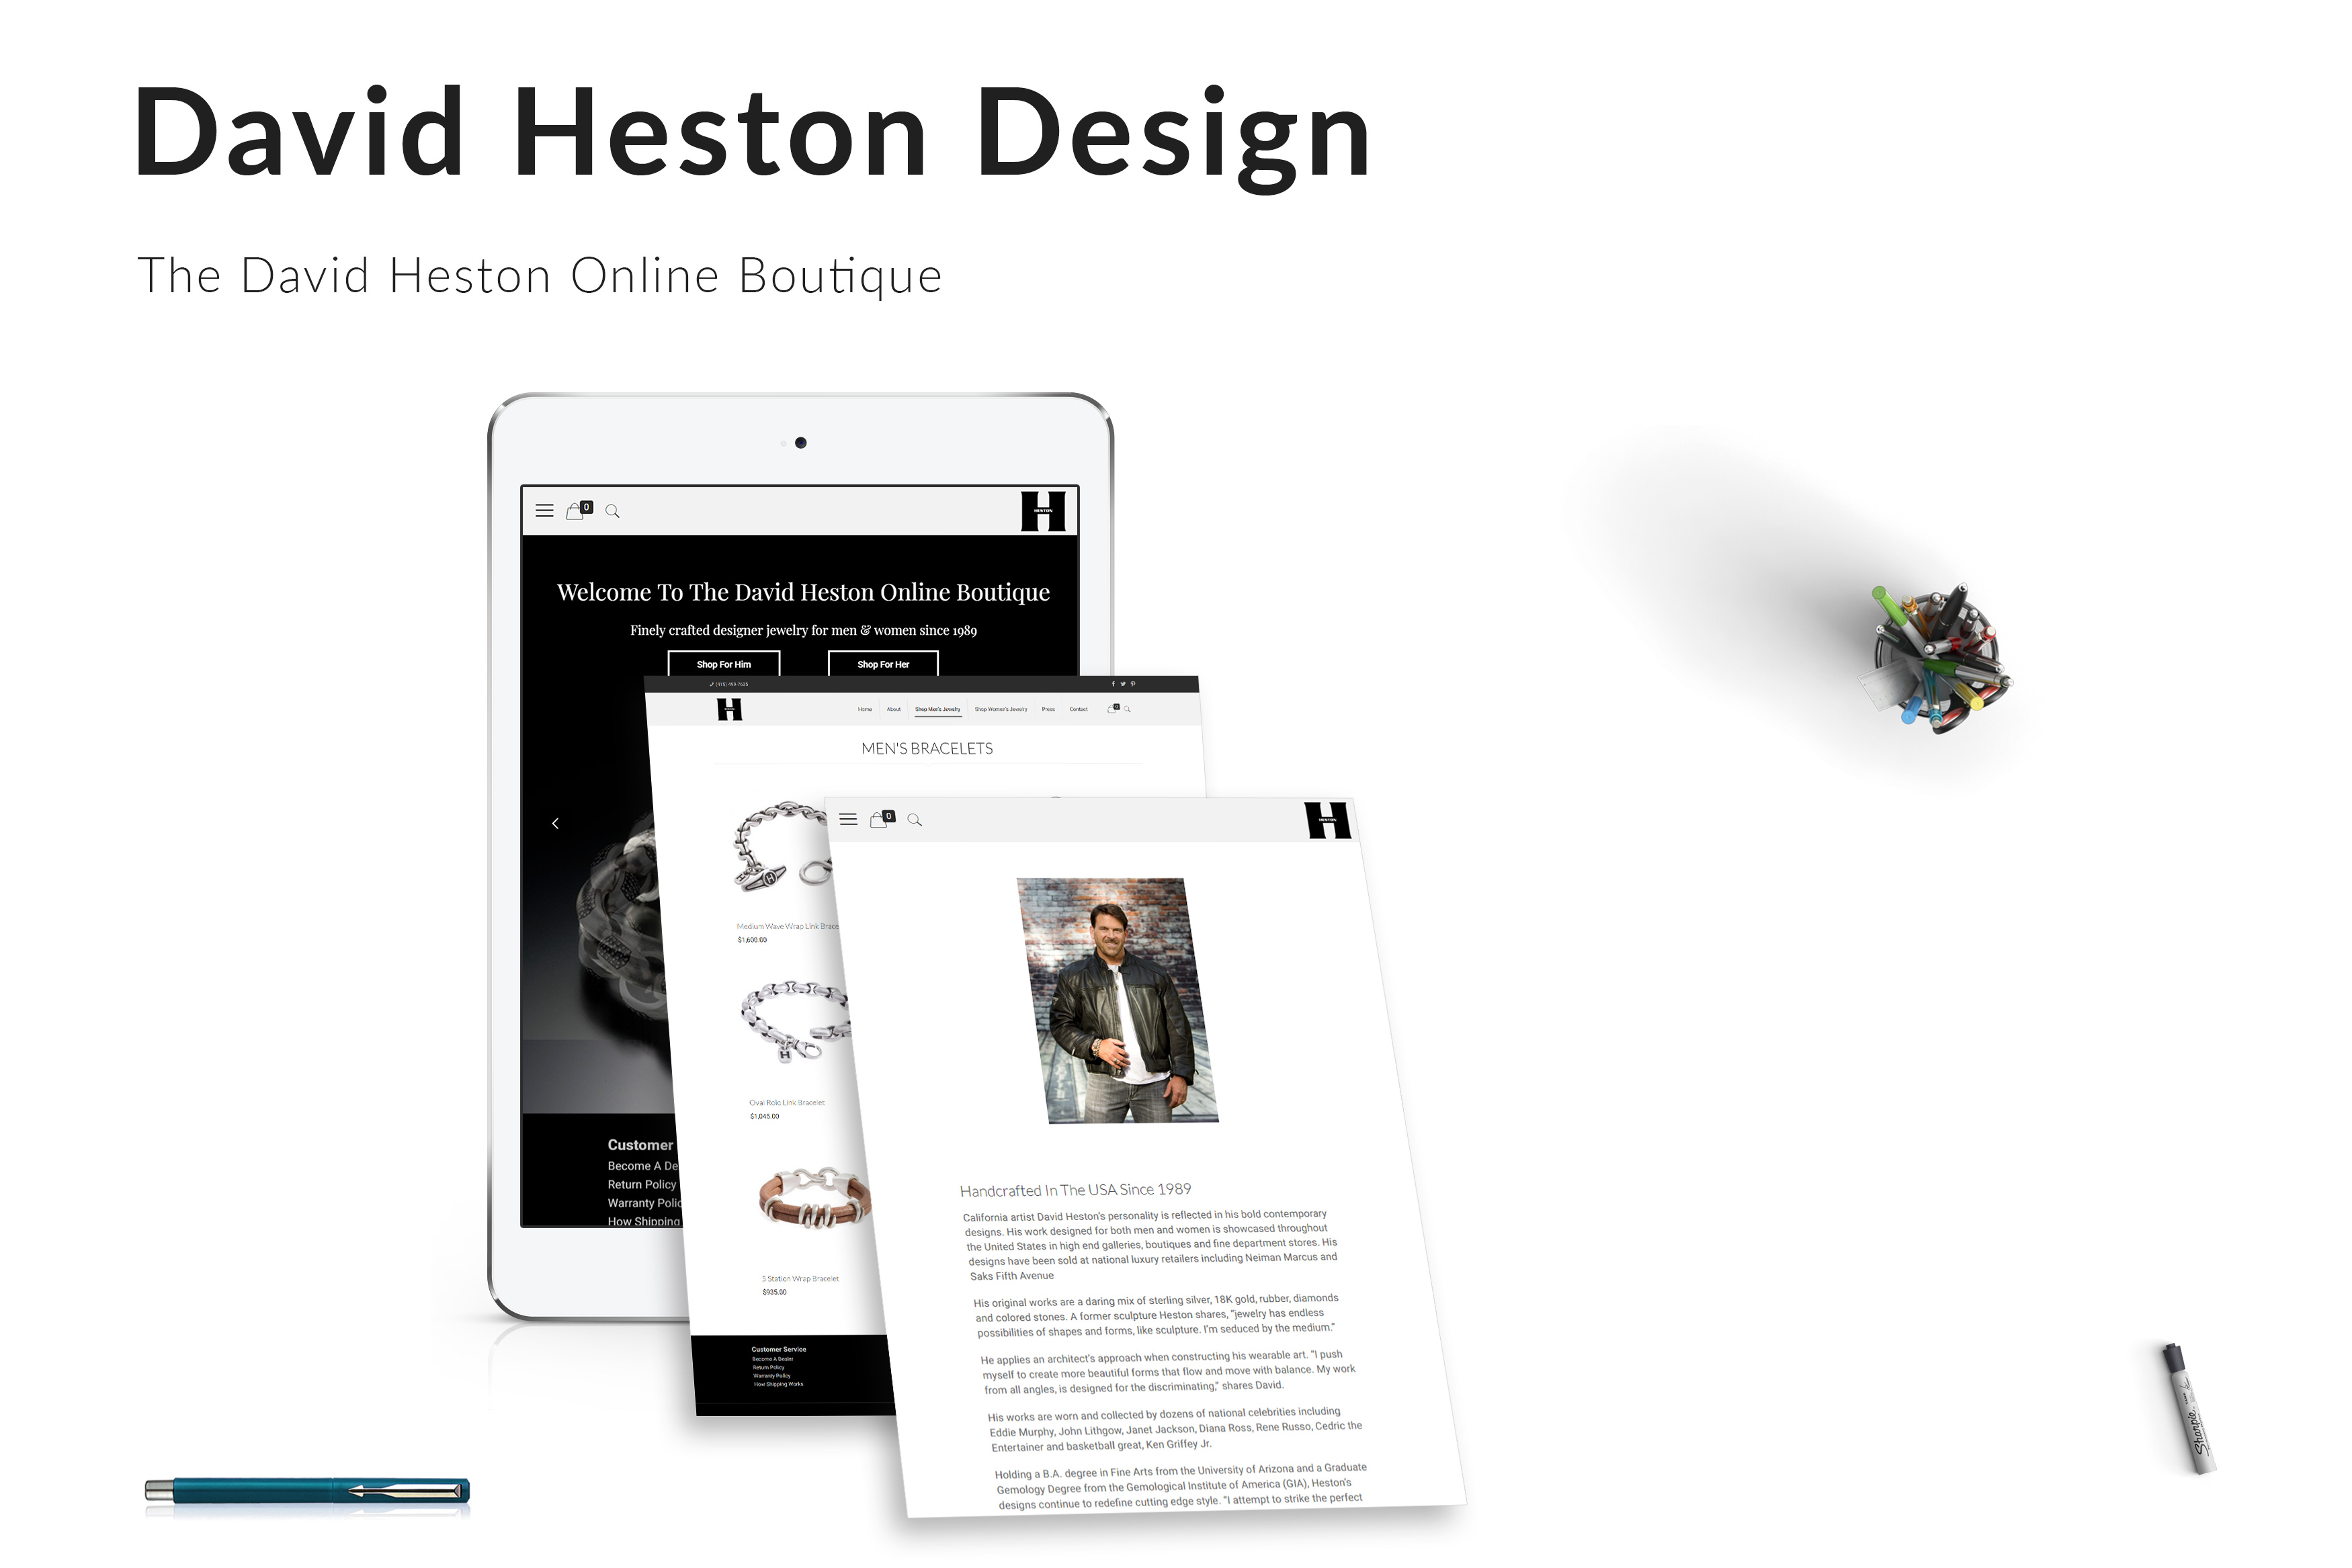 david-heston-design-main-page